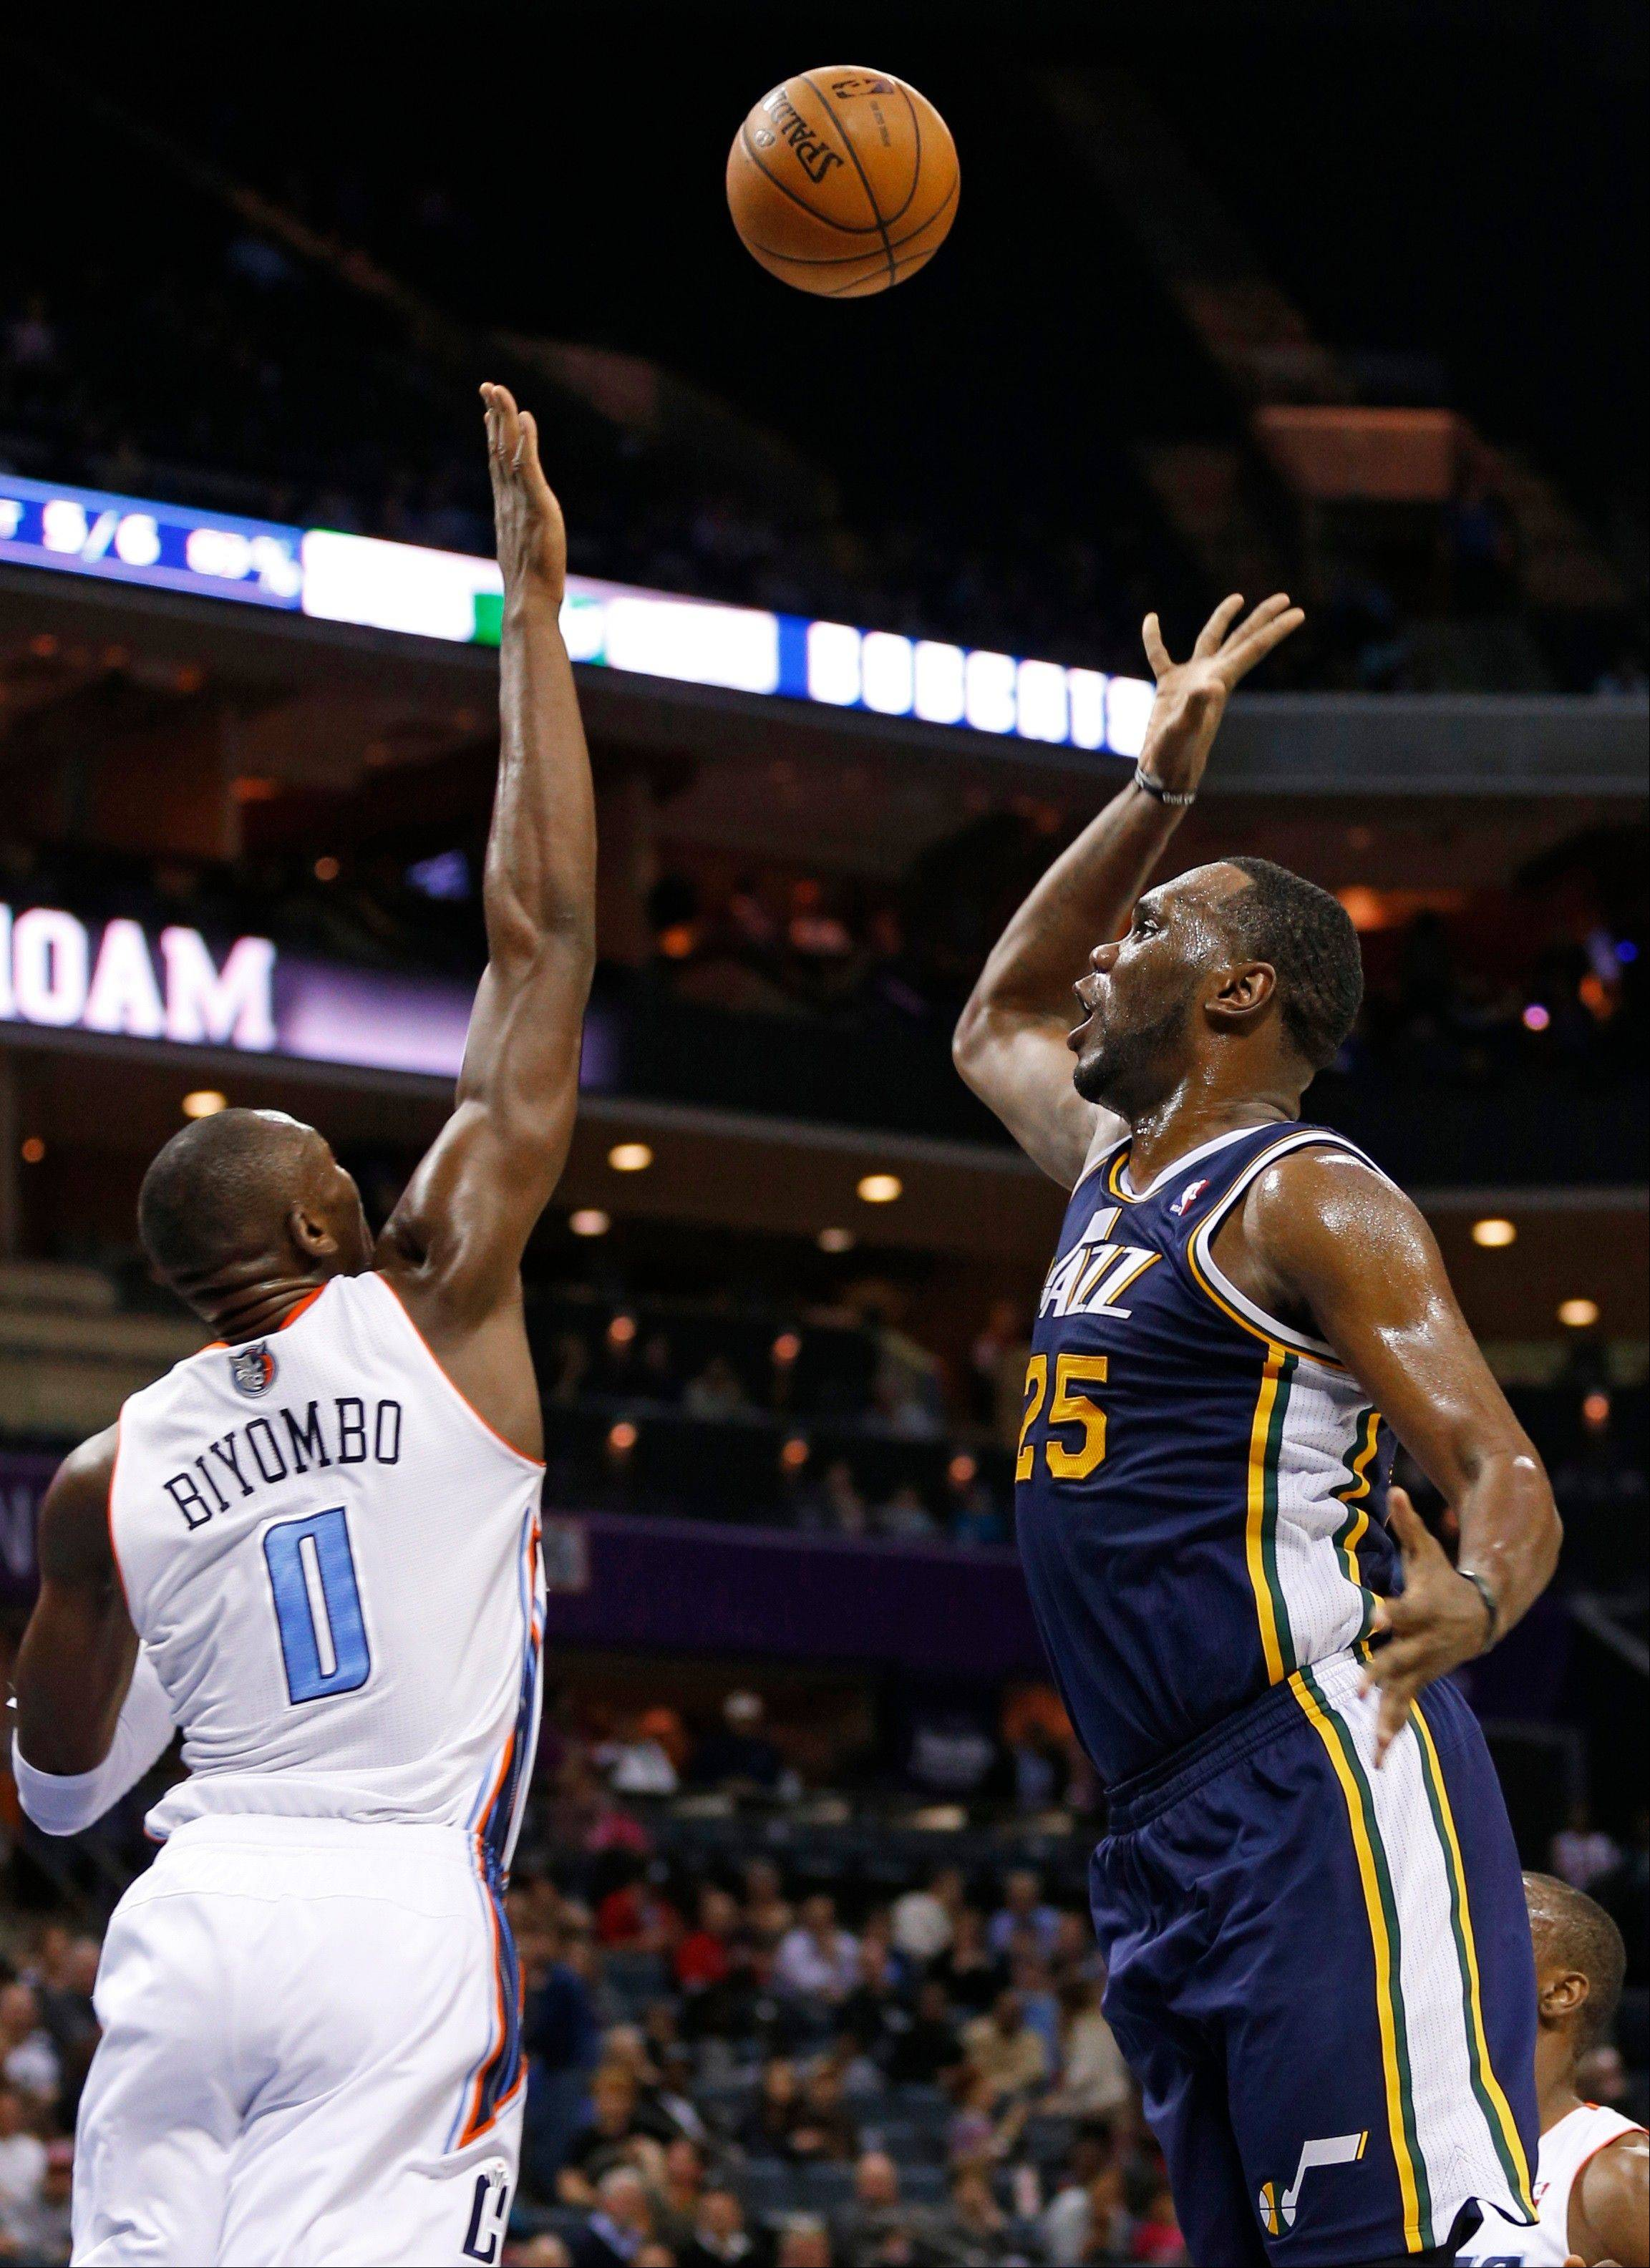 Utah Jazz's Al Jefferson (25) shoots over Charlotte Bobcats' Bismack Biyombo (0) during the first half of an NBA basketball game in Charlotte, N.C., Wednesday. The Jazz won 112-102.